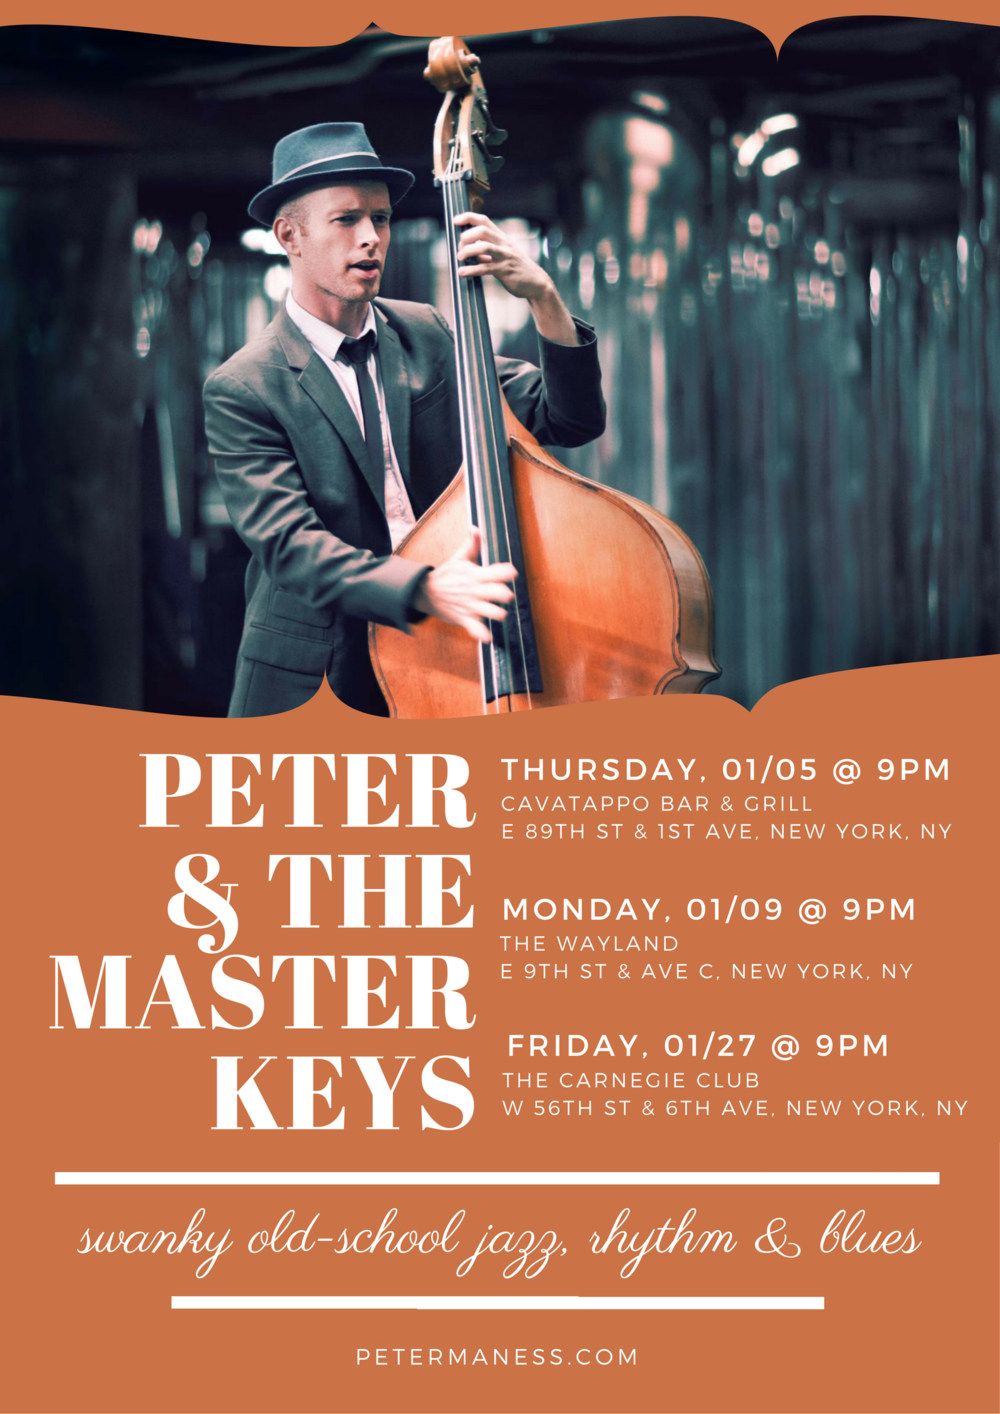 peter & the master keys january jazz and blues gigs in new york city